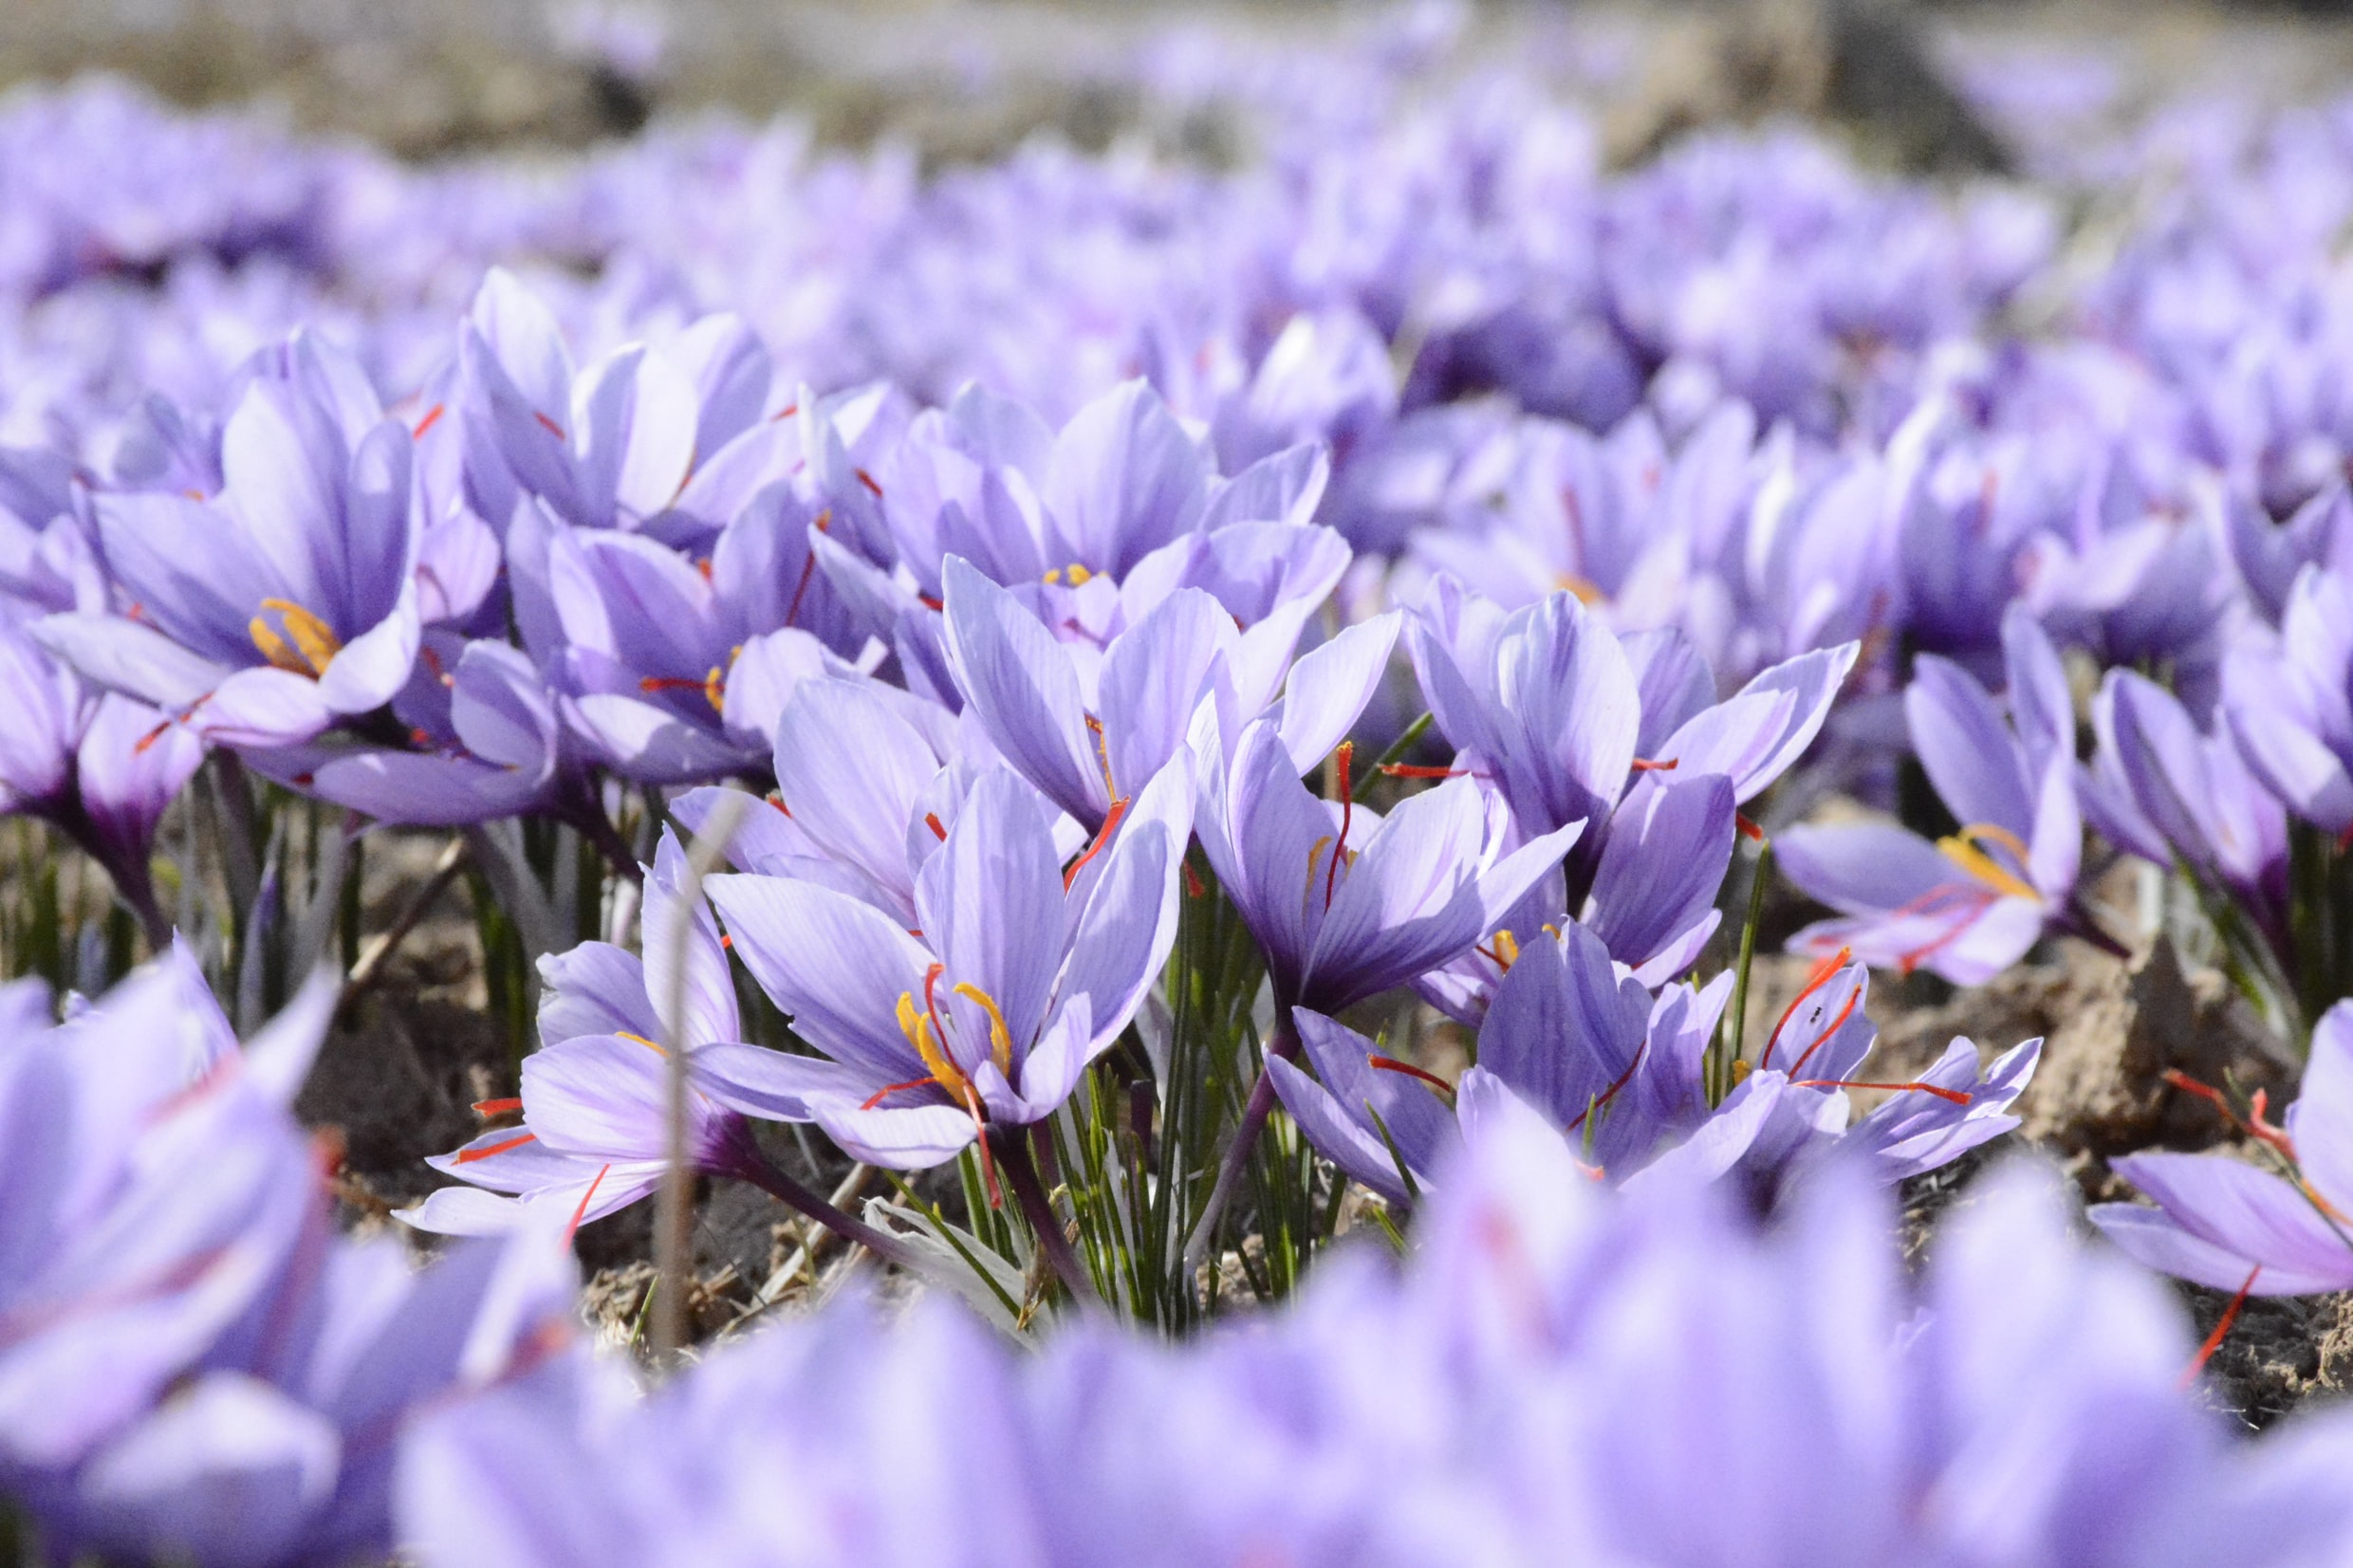 Lilac and purple crocus flowers in Spring, Mashhad